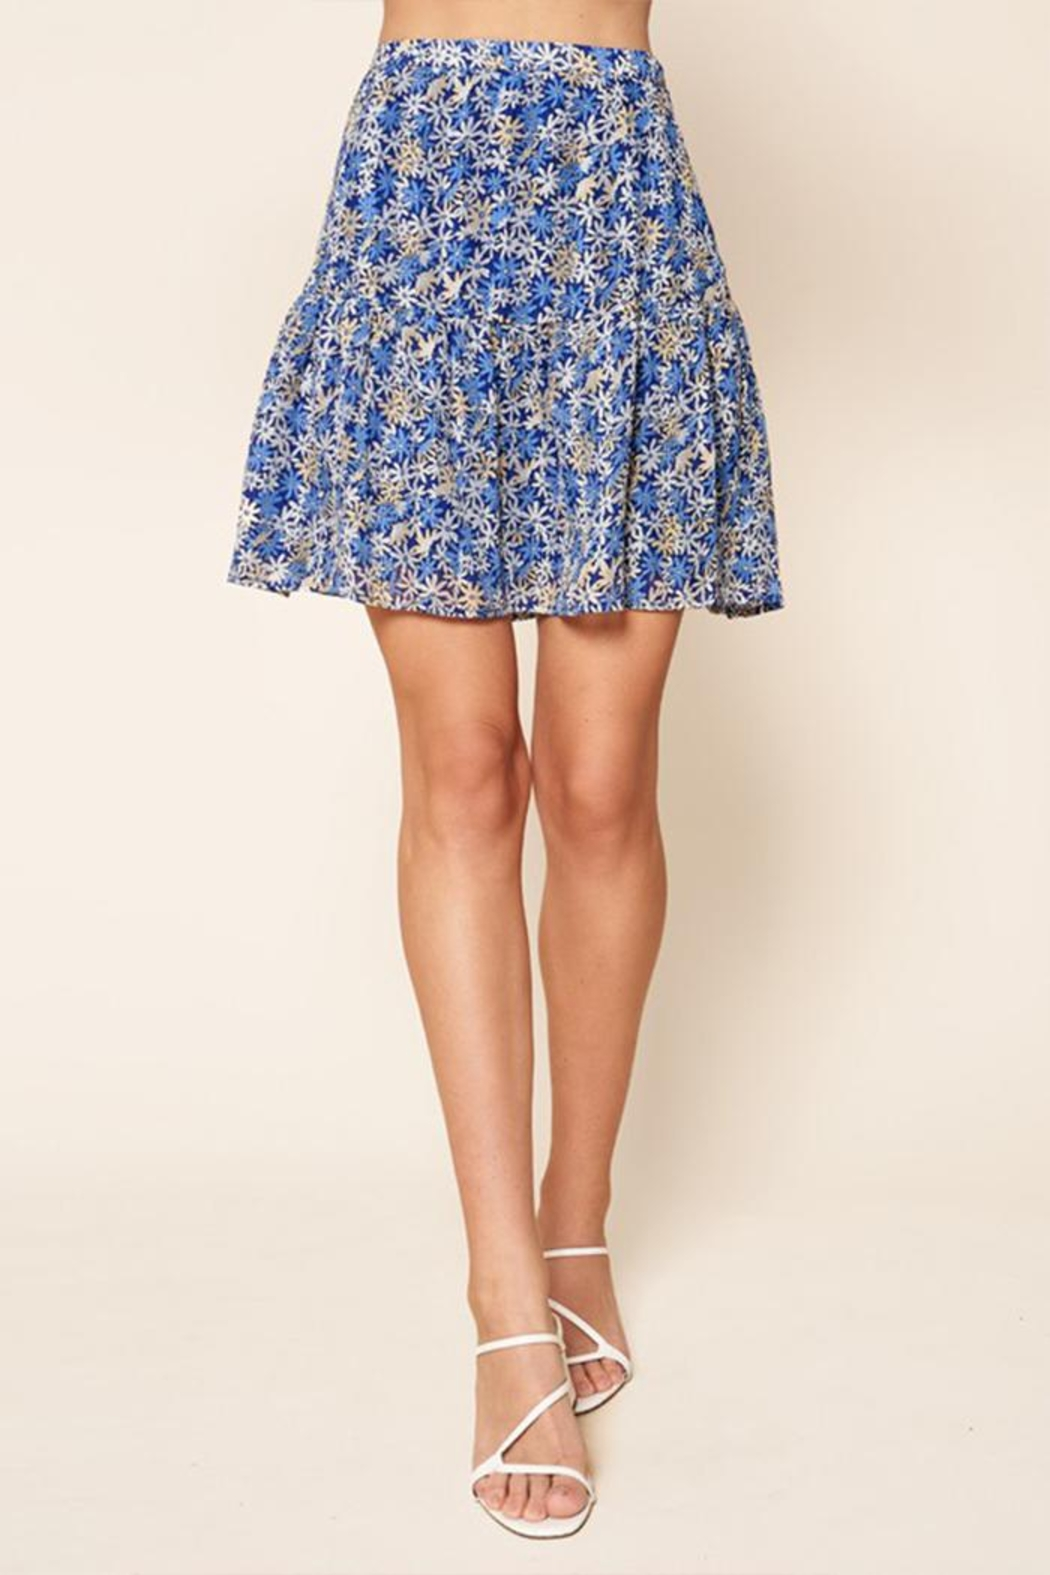 Sugar Lips Floral Mini Skirt - Main Image